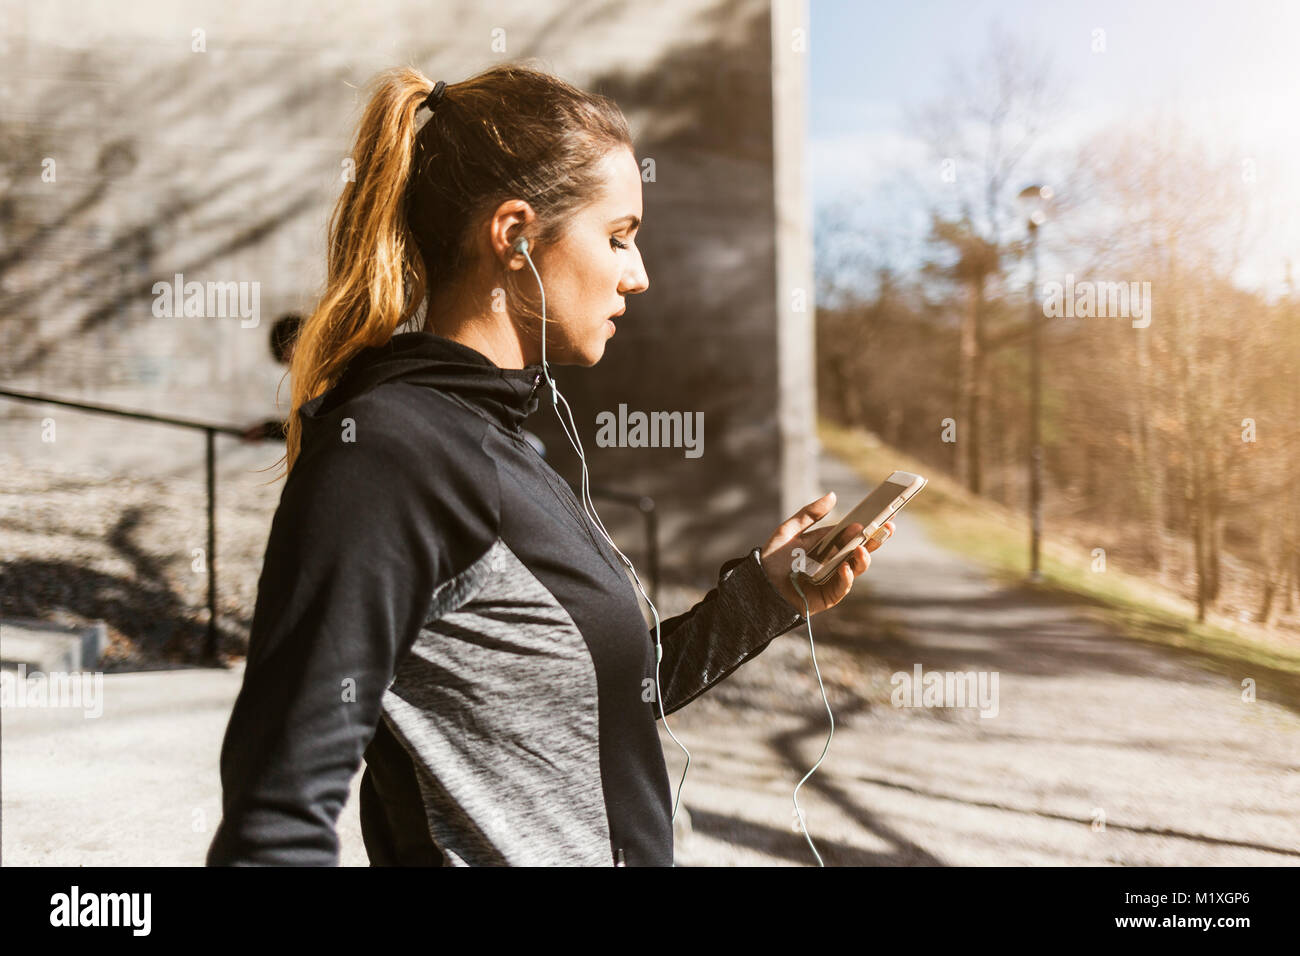 Young woman on phone in Stockholm, Sweden - Stock Image